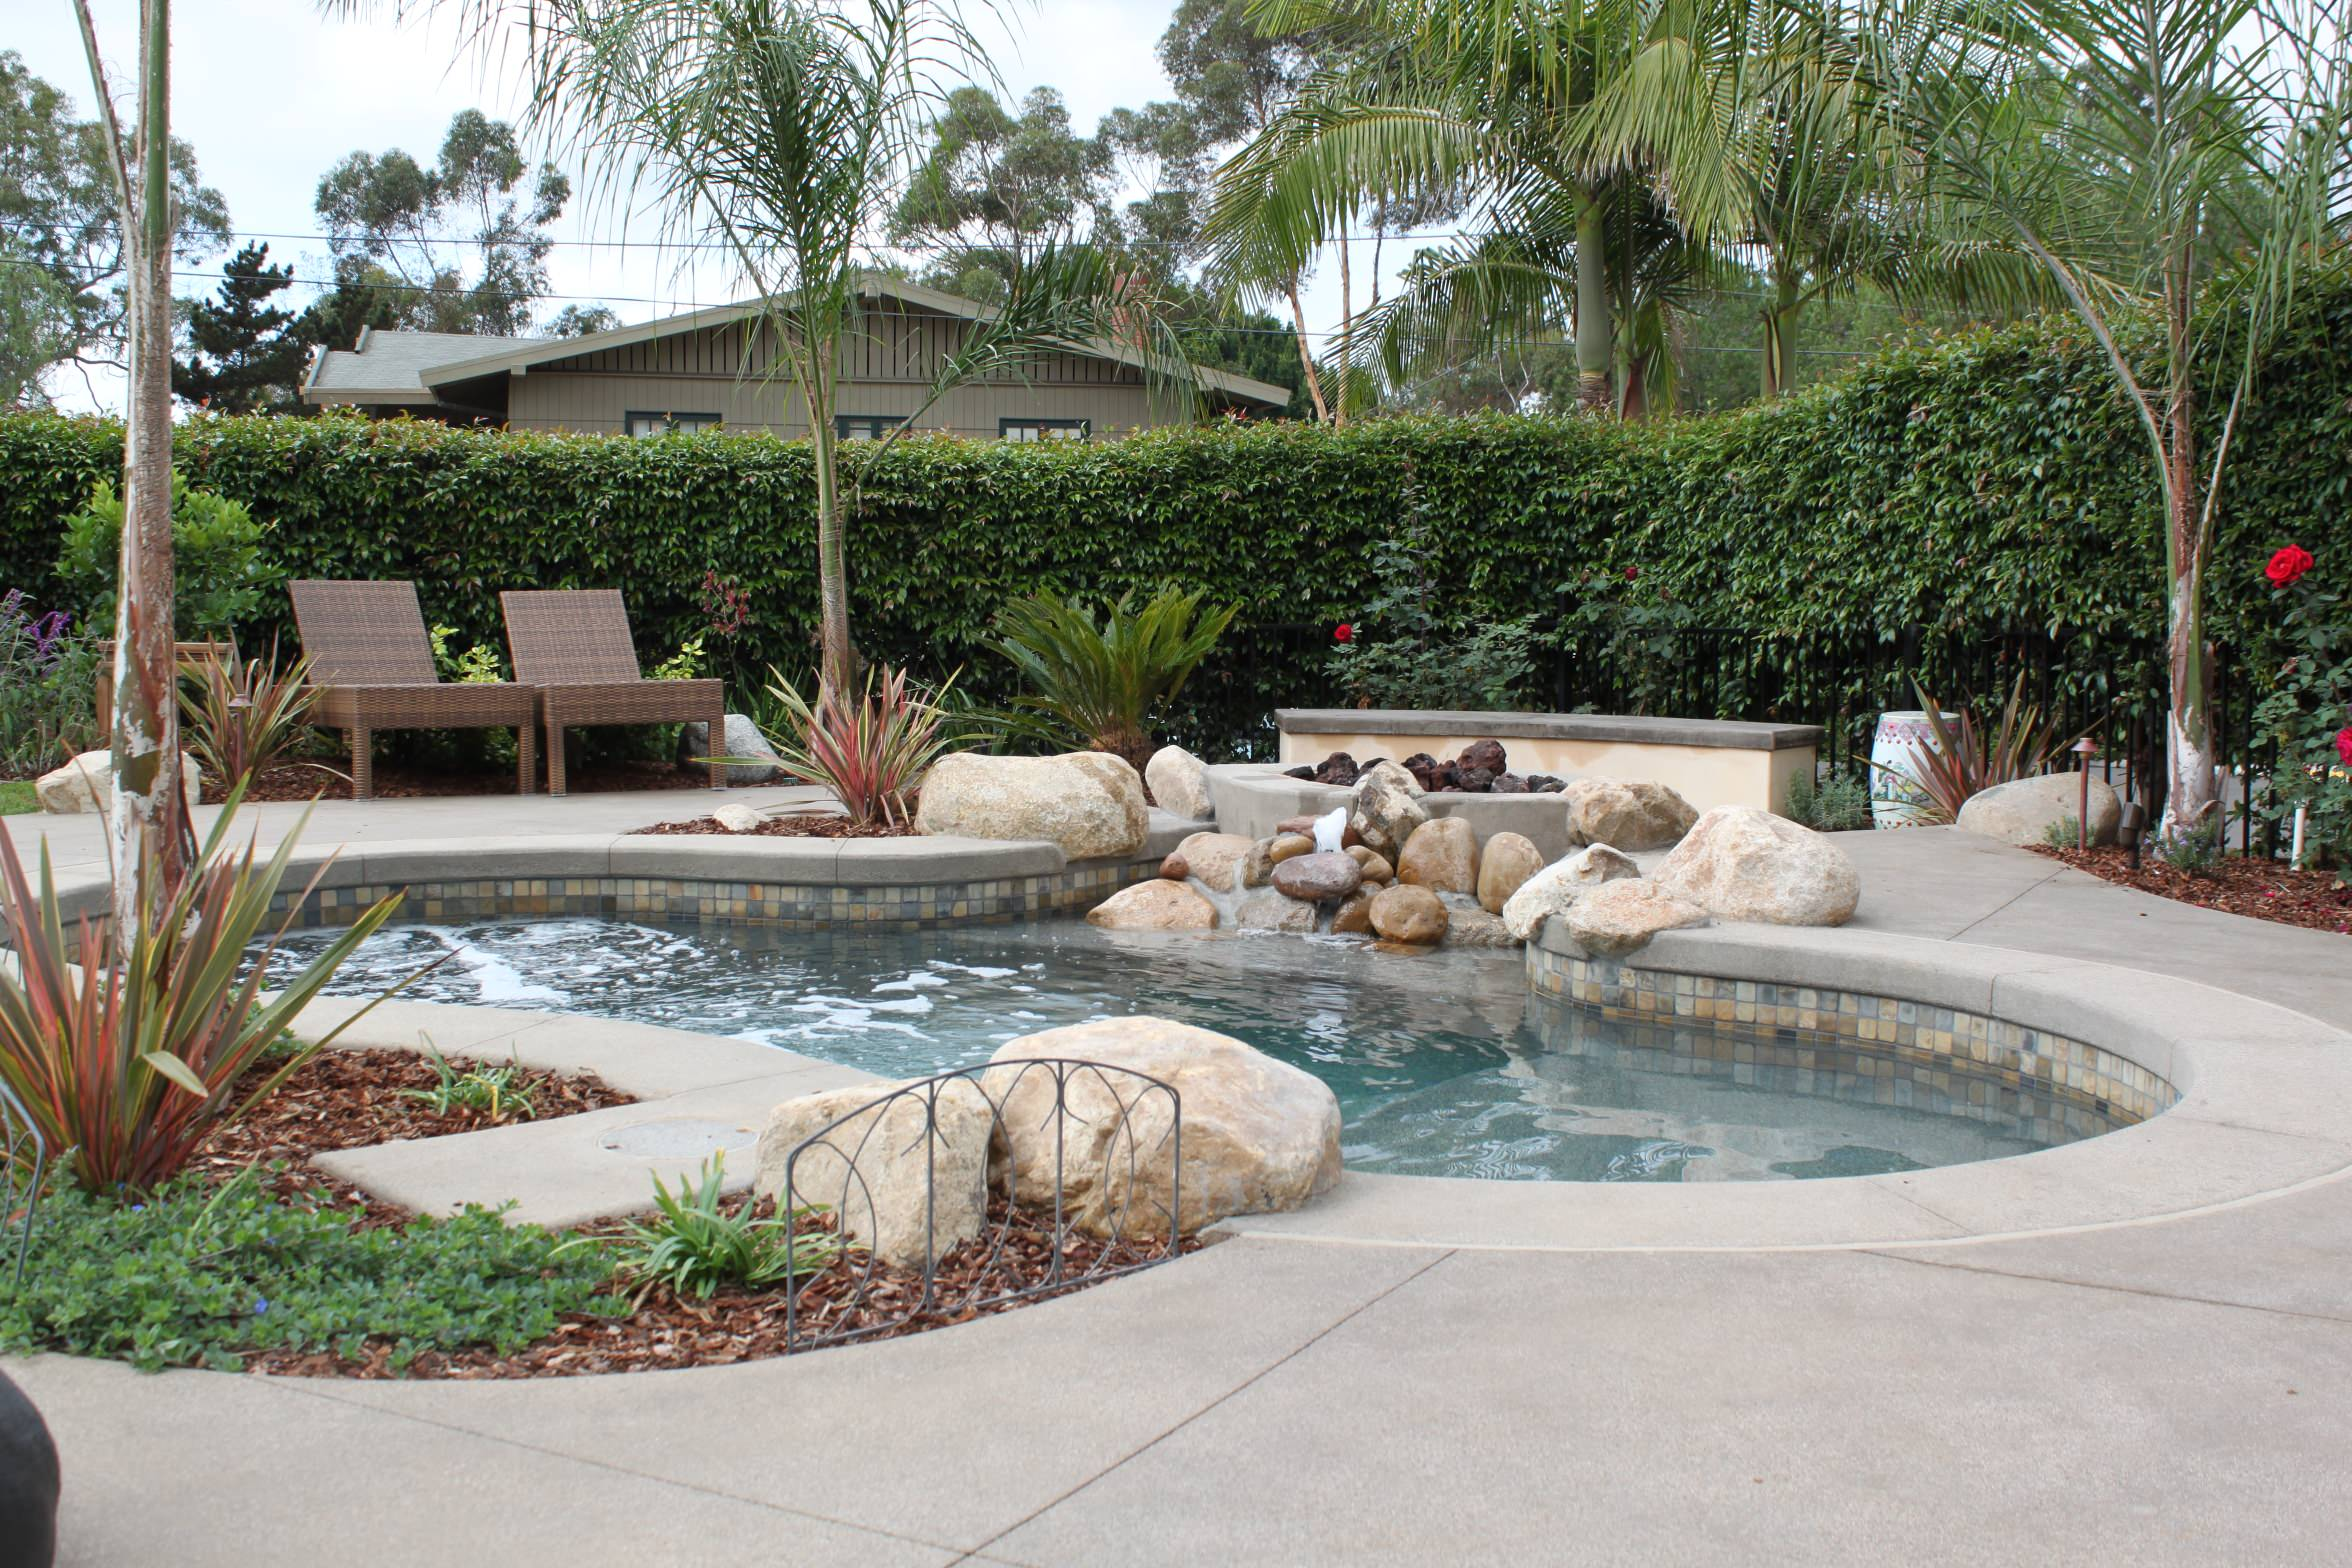 A Spool, Spa and Pool Combination with Fire Pit Above